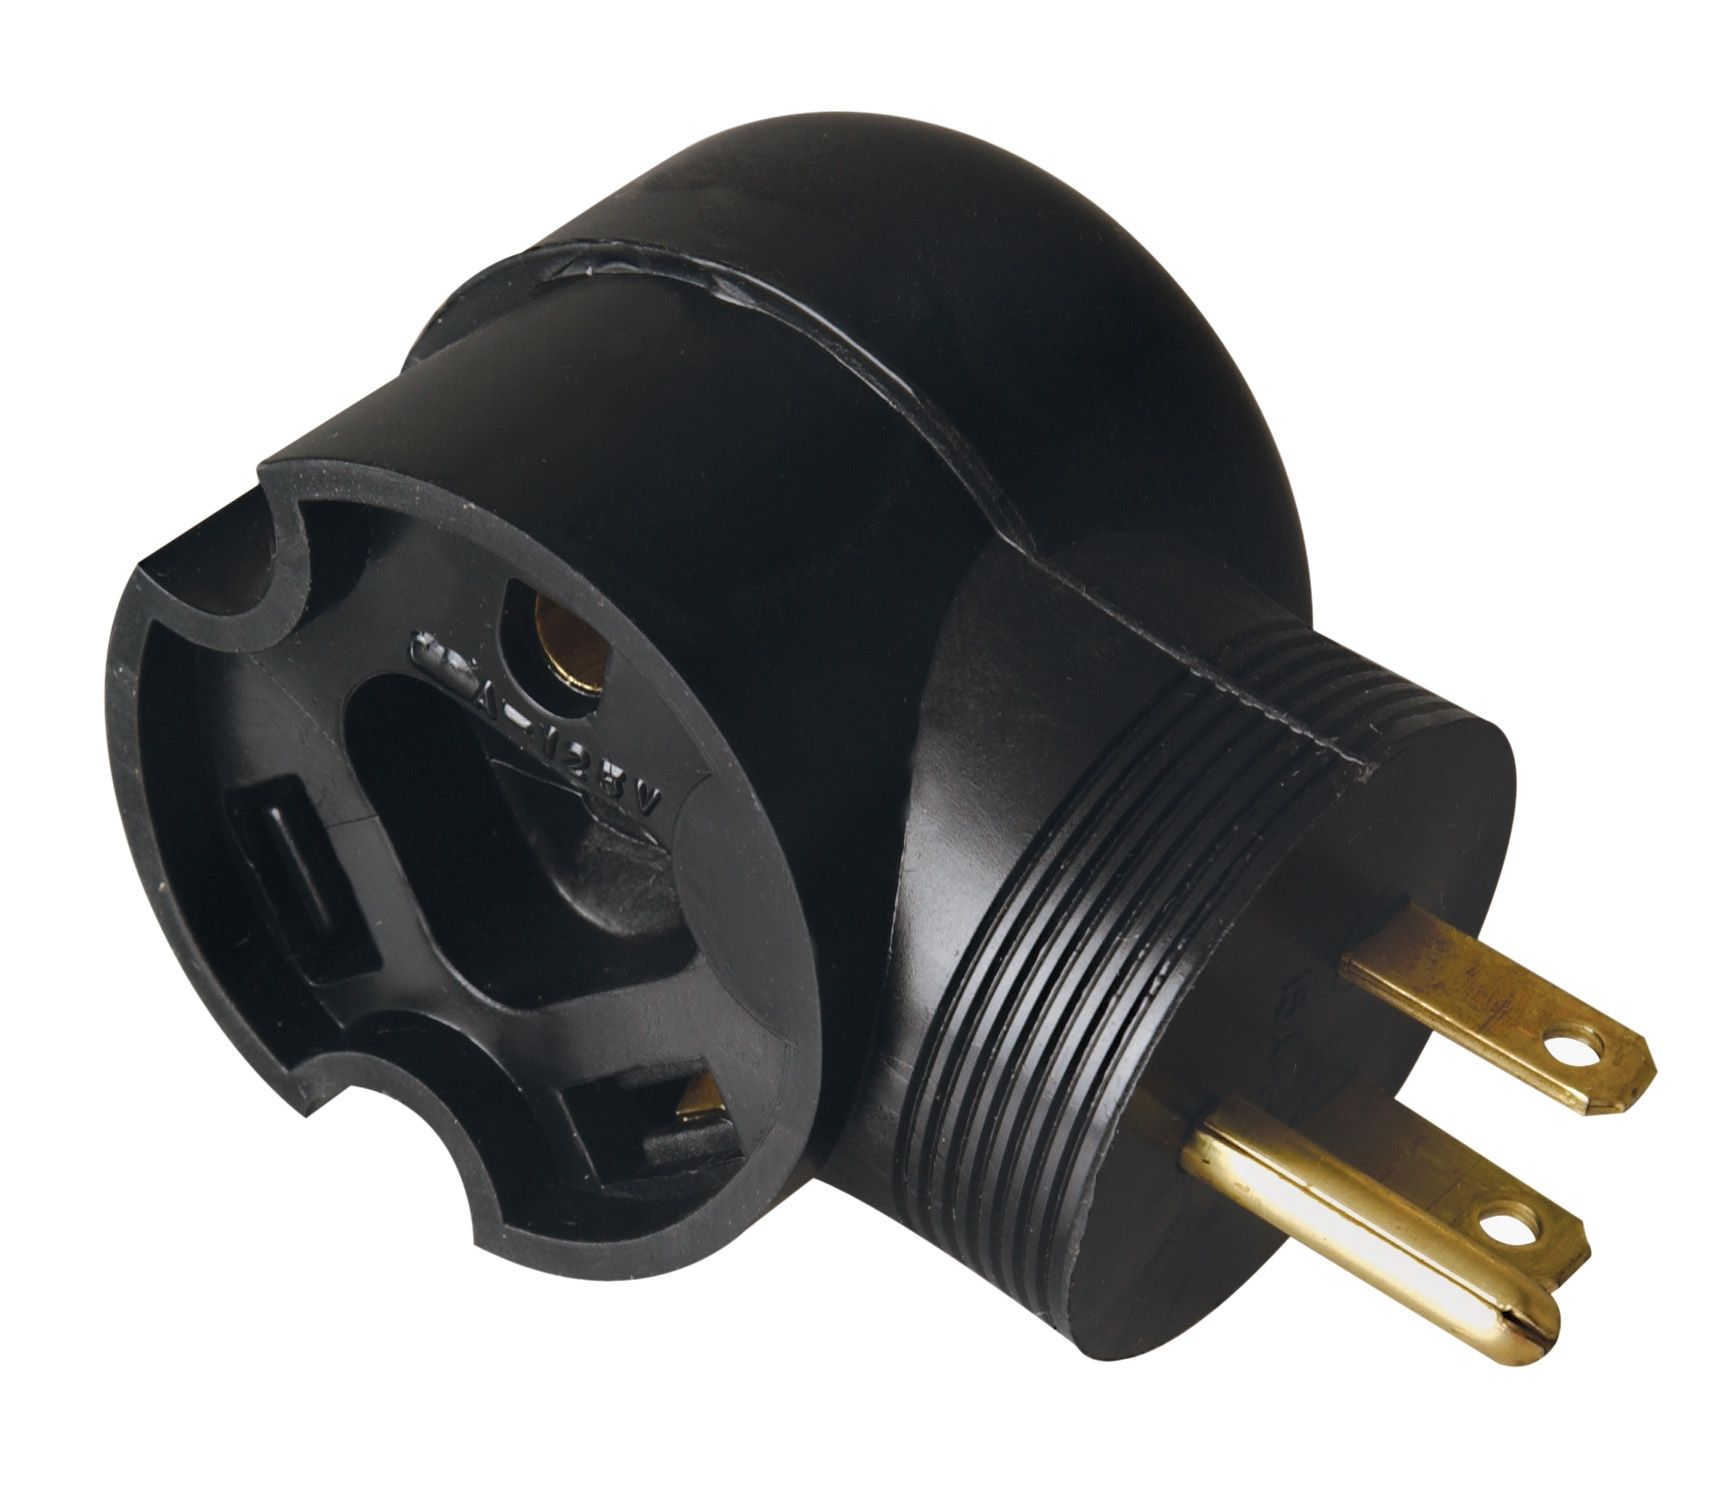 095247508 Technology Research Corp Power Cord Adapter For Connecting